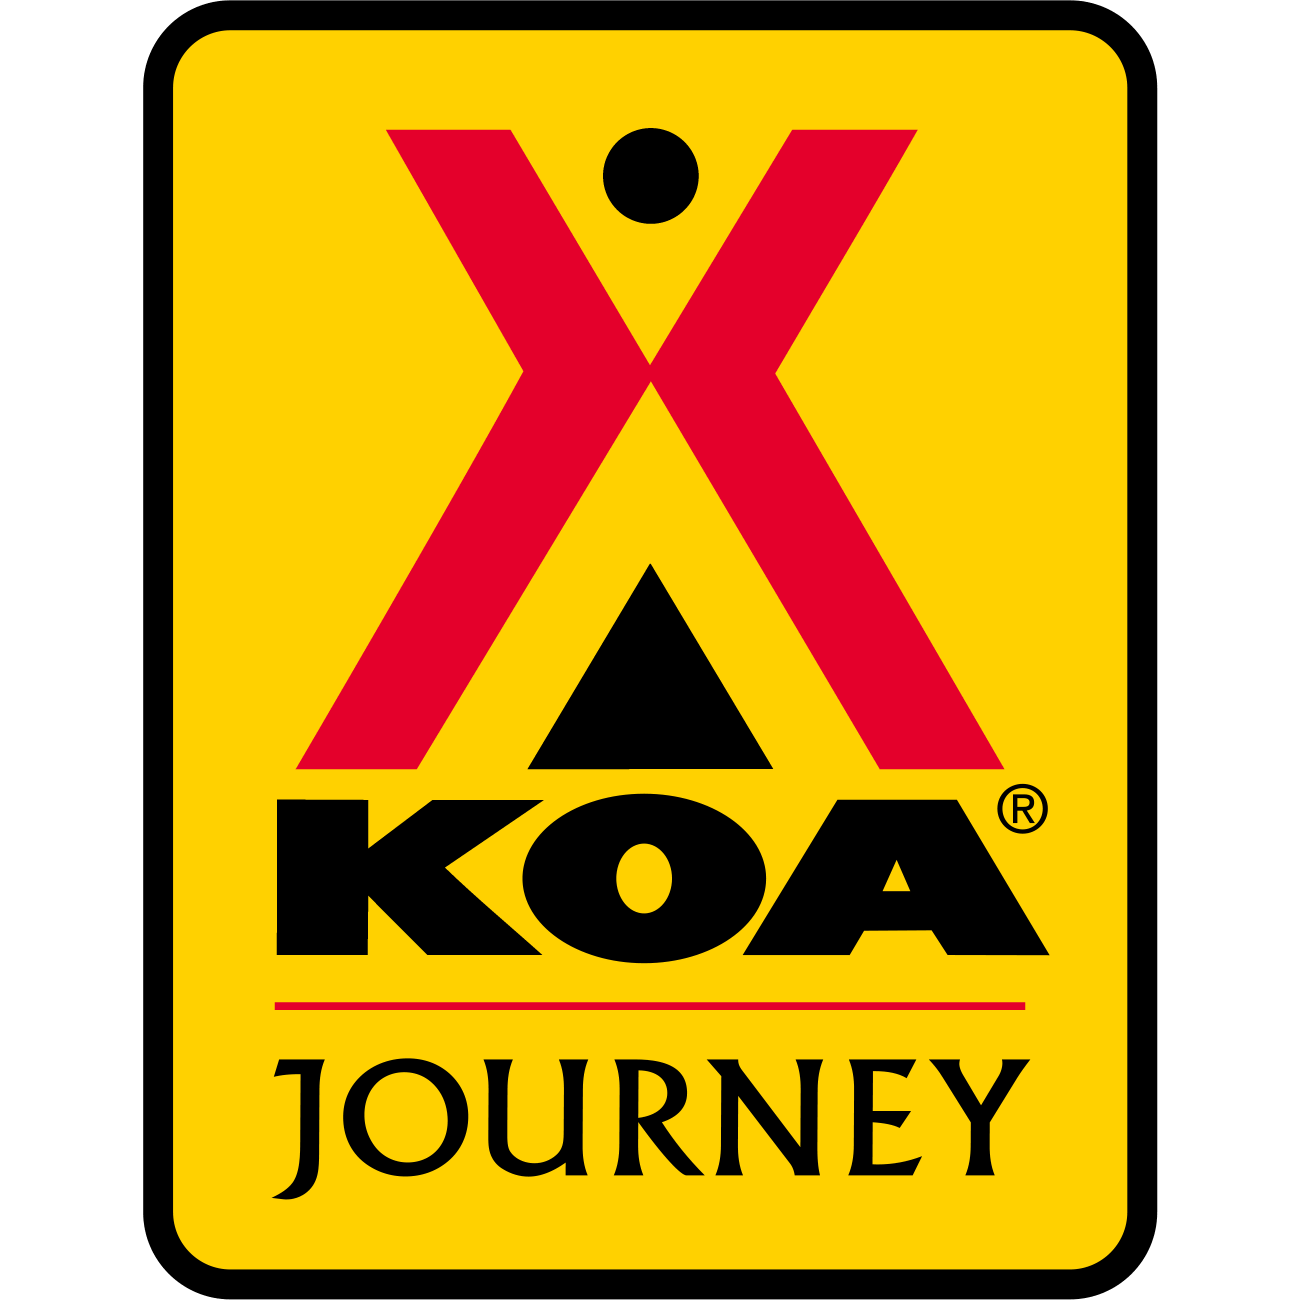 Cloquet / Duluth KOA Journey